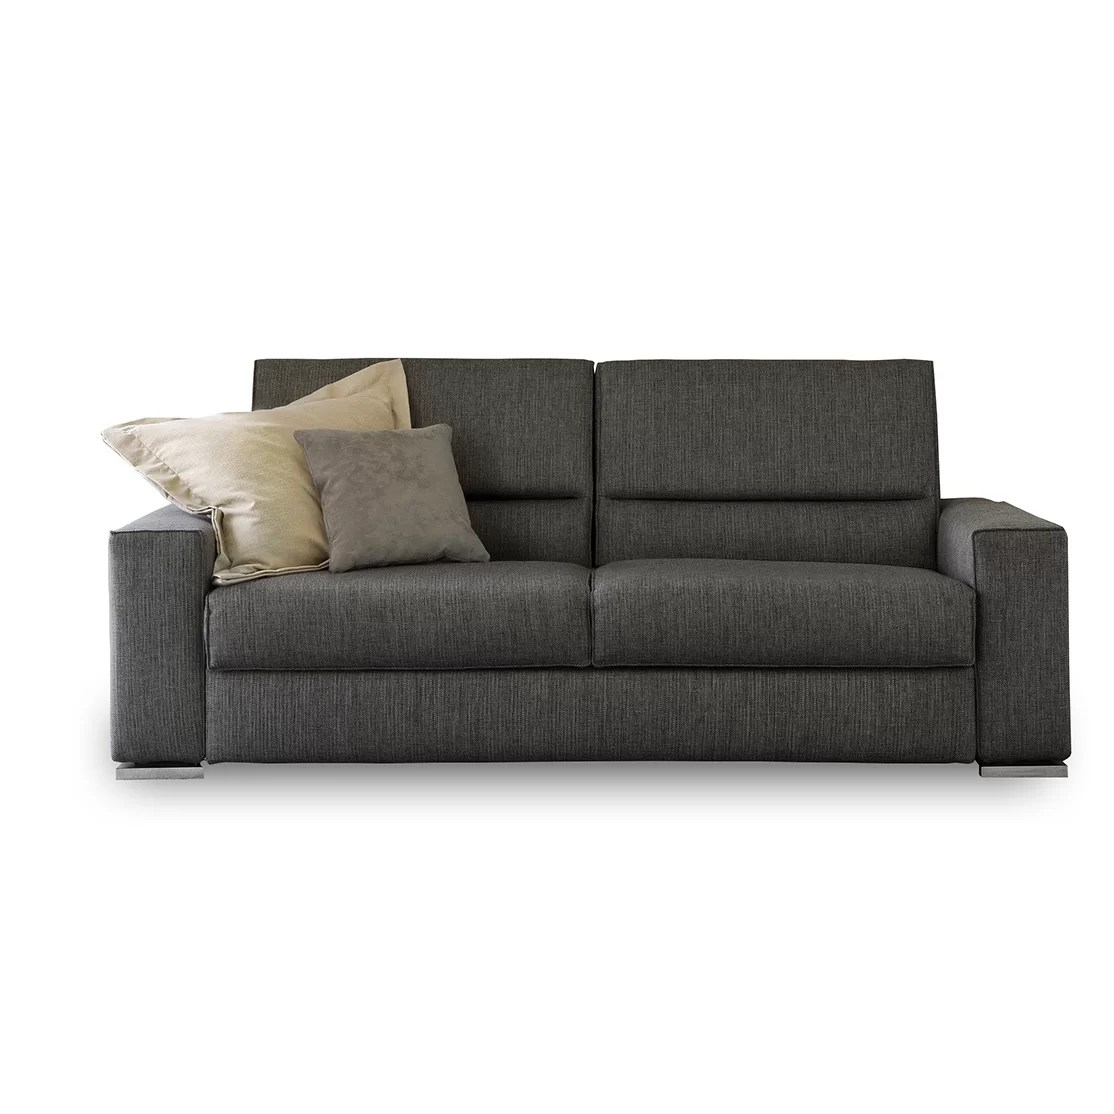 Sofa Bed Guest Room Ideas Infinito Sofa Bed